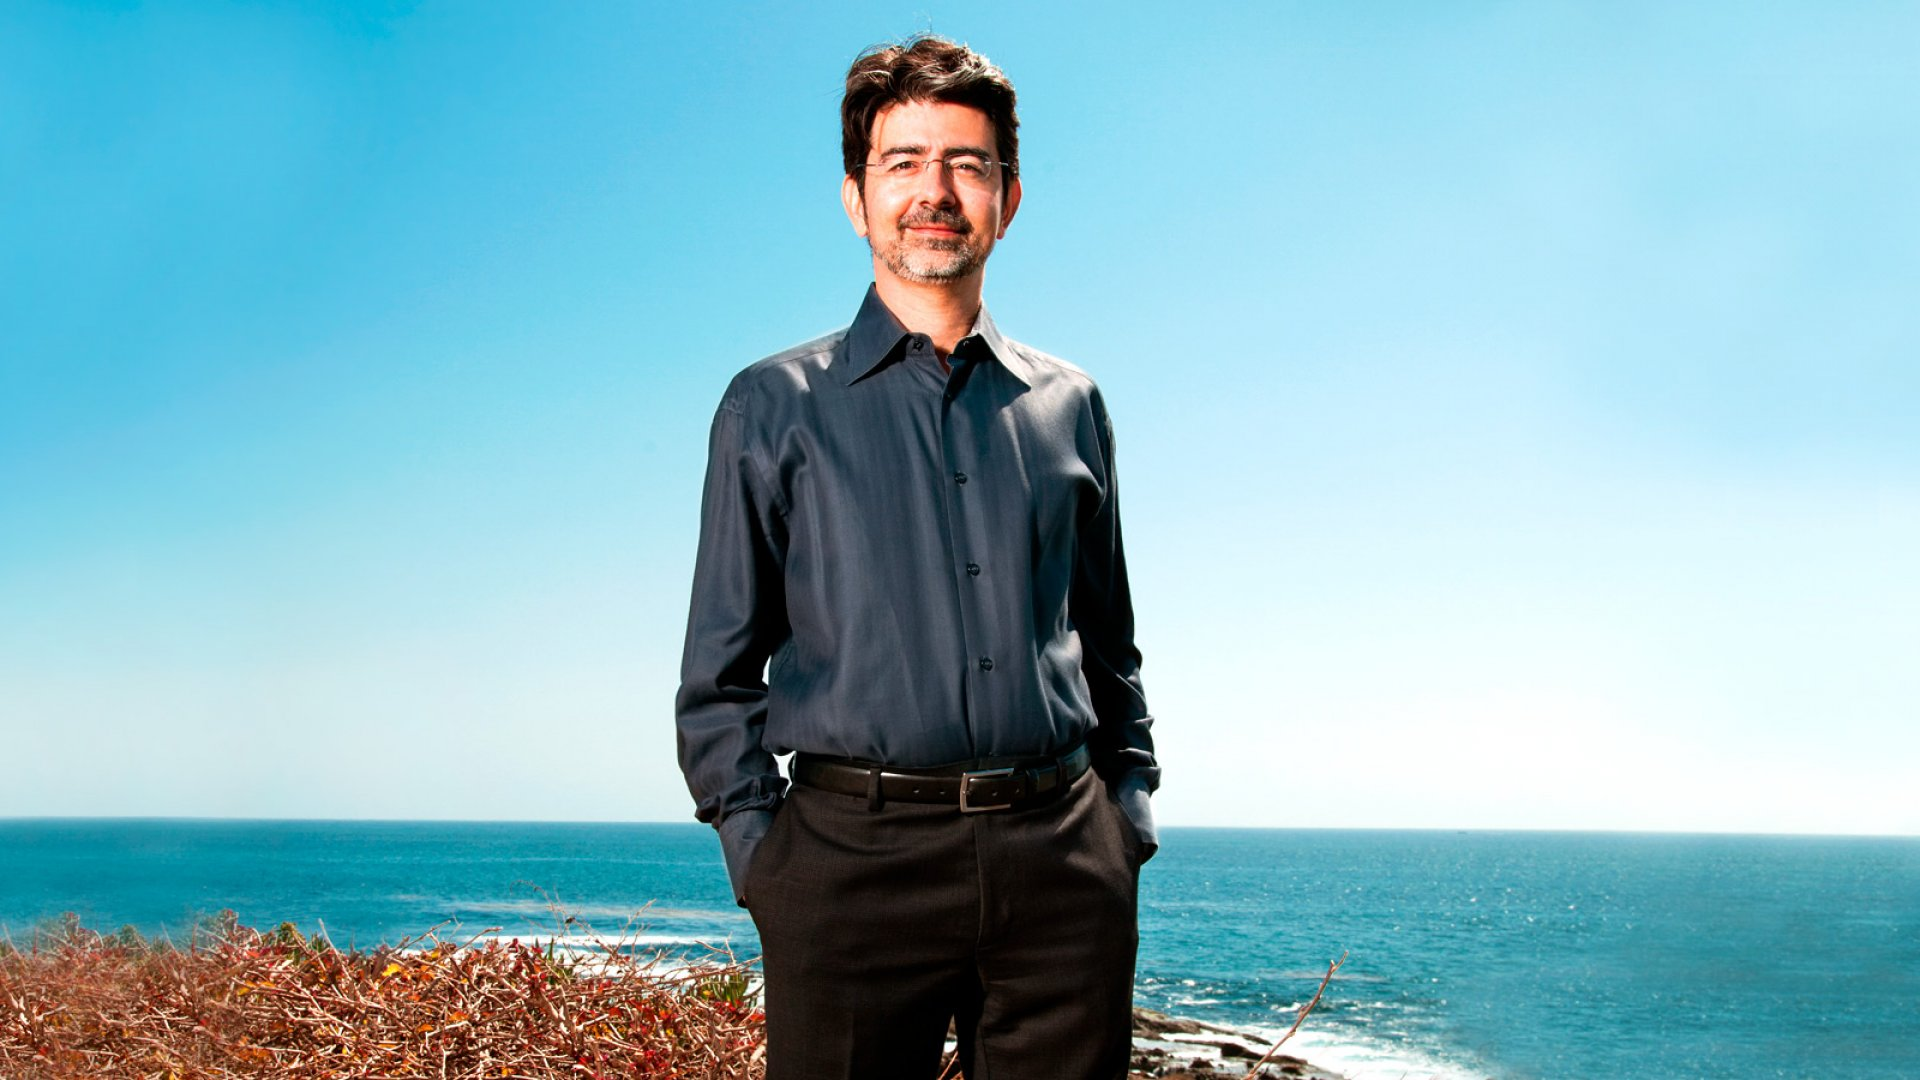 How Pierre Omidyar Turned An Idealistic Notion Into Billions Of Dollars